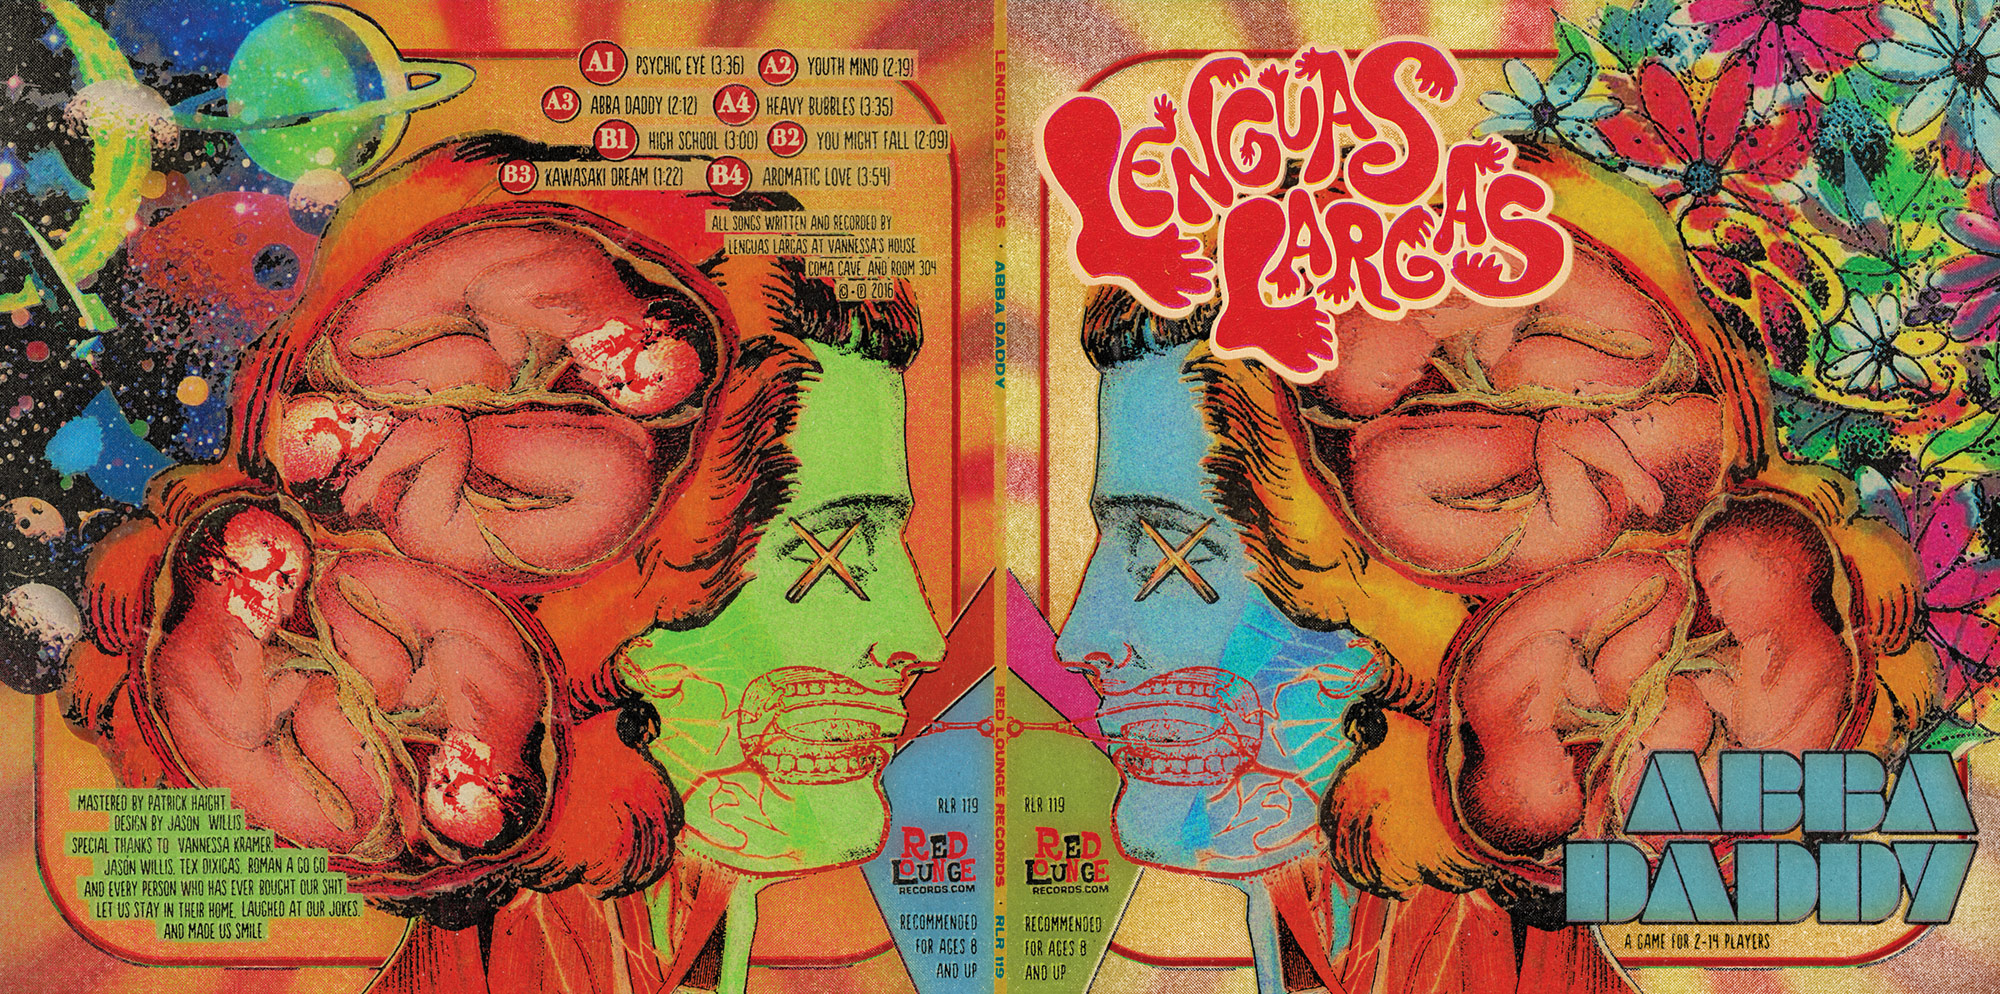 "Lenguas Largas ""Abba Daddy"" LP - Gatefold Exterior Graphic Design"